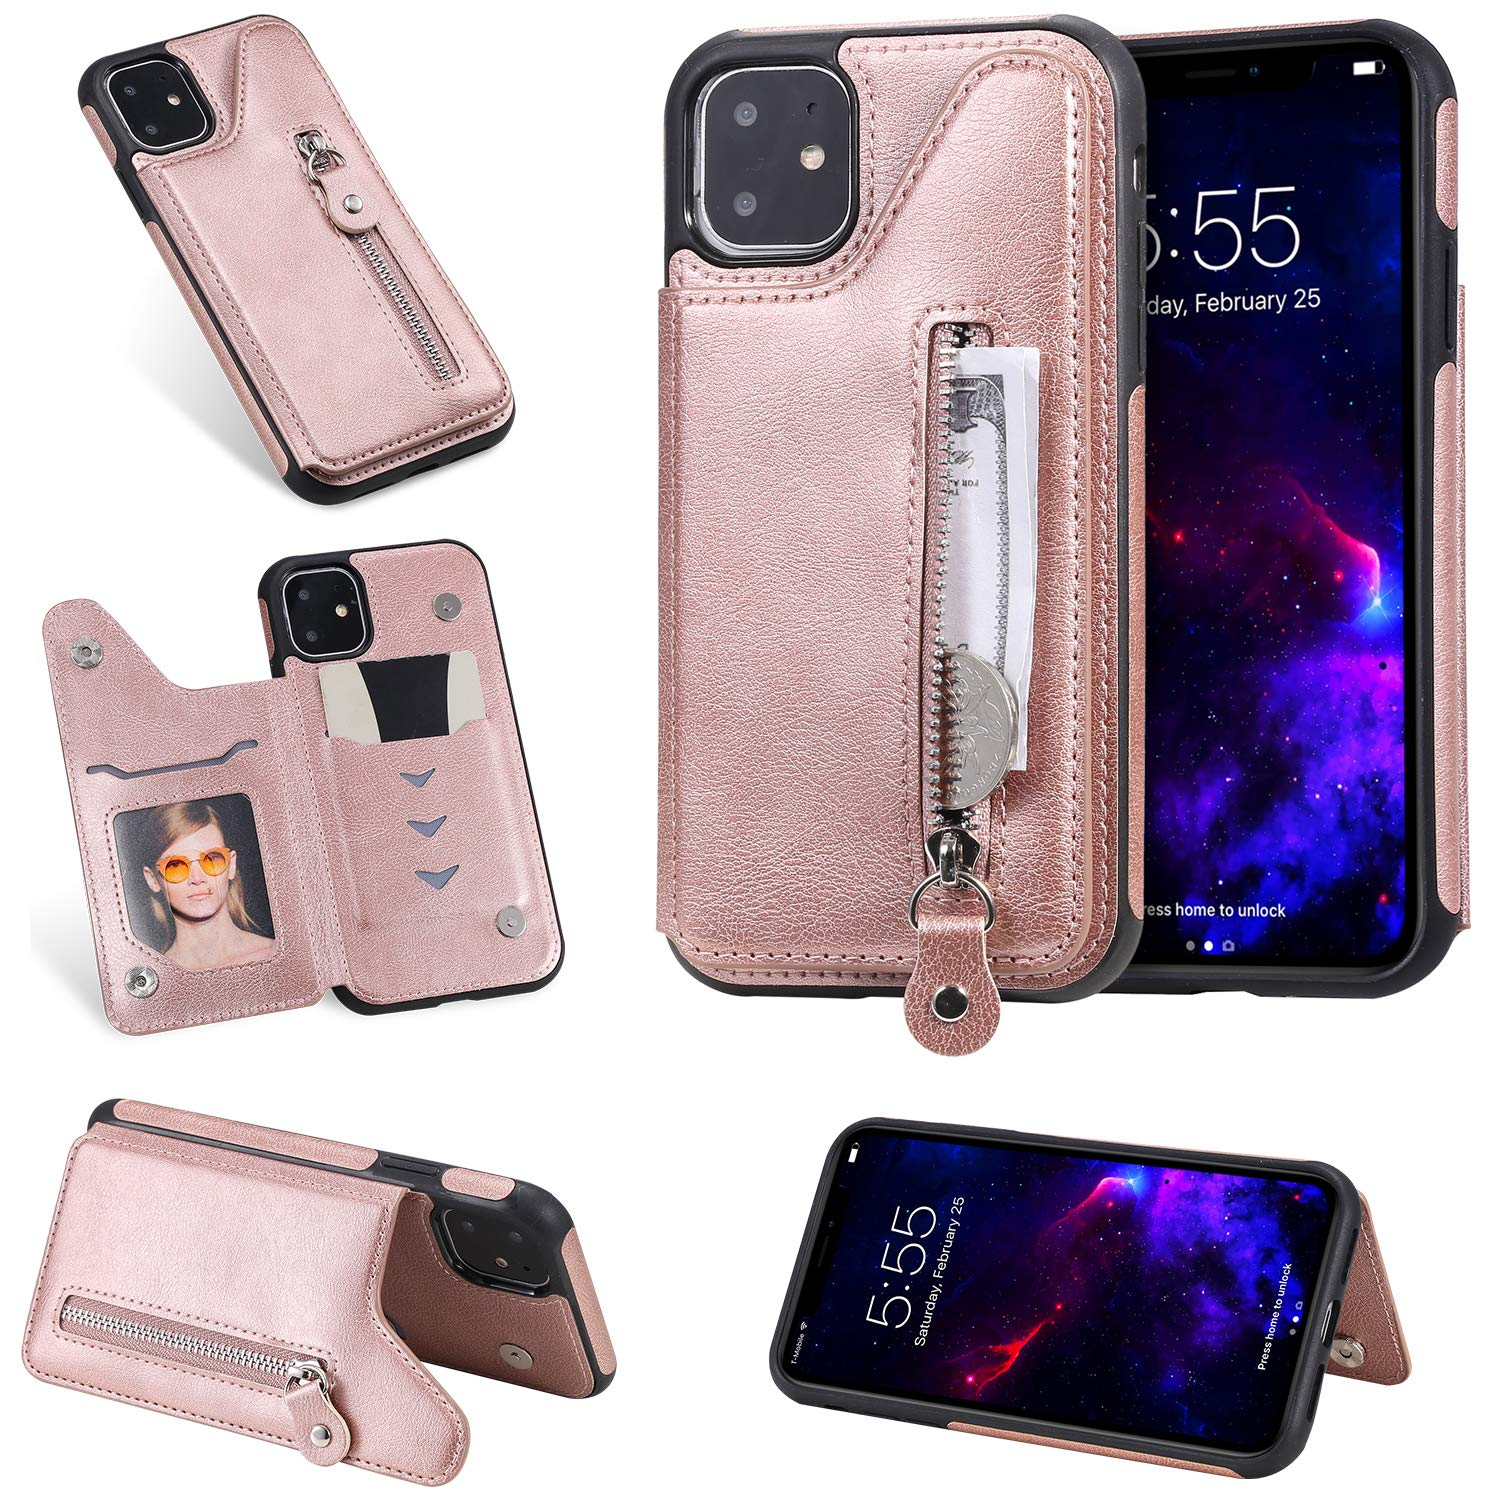 Tznzxm iPhone 11 6.1 inch Case, Luxury Zipper PU Leather Kickstand Card Slots Double Magnetic Clasp Durable Shockproof Soft TPU Back Wallet Flip Cover for iPhone 6.1 inch (2019) Rose Gold by Tznzxm